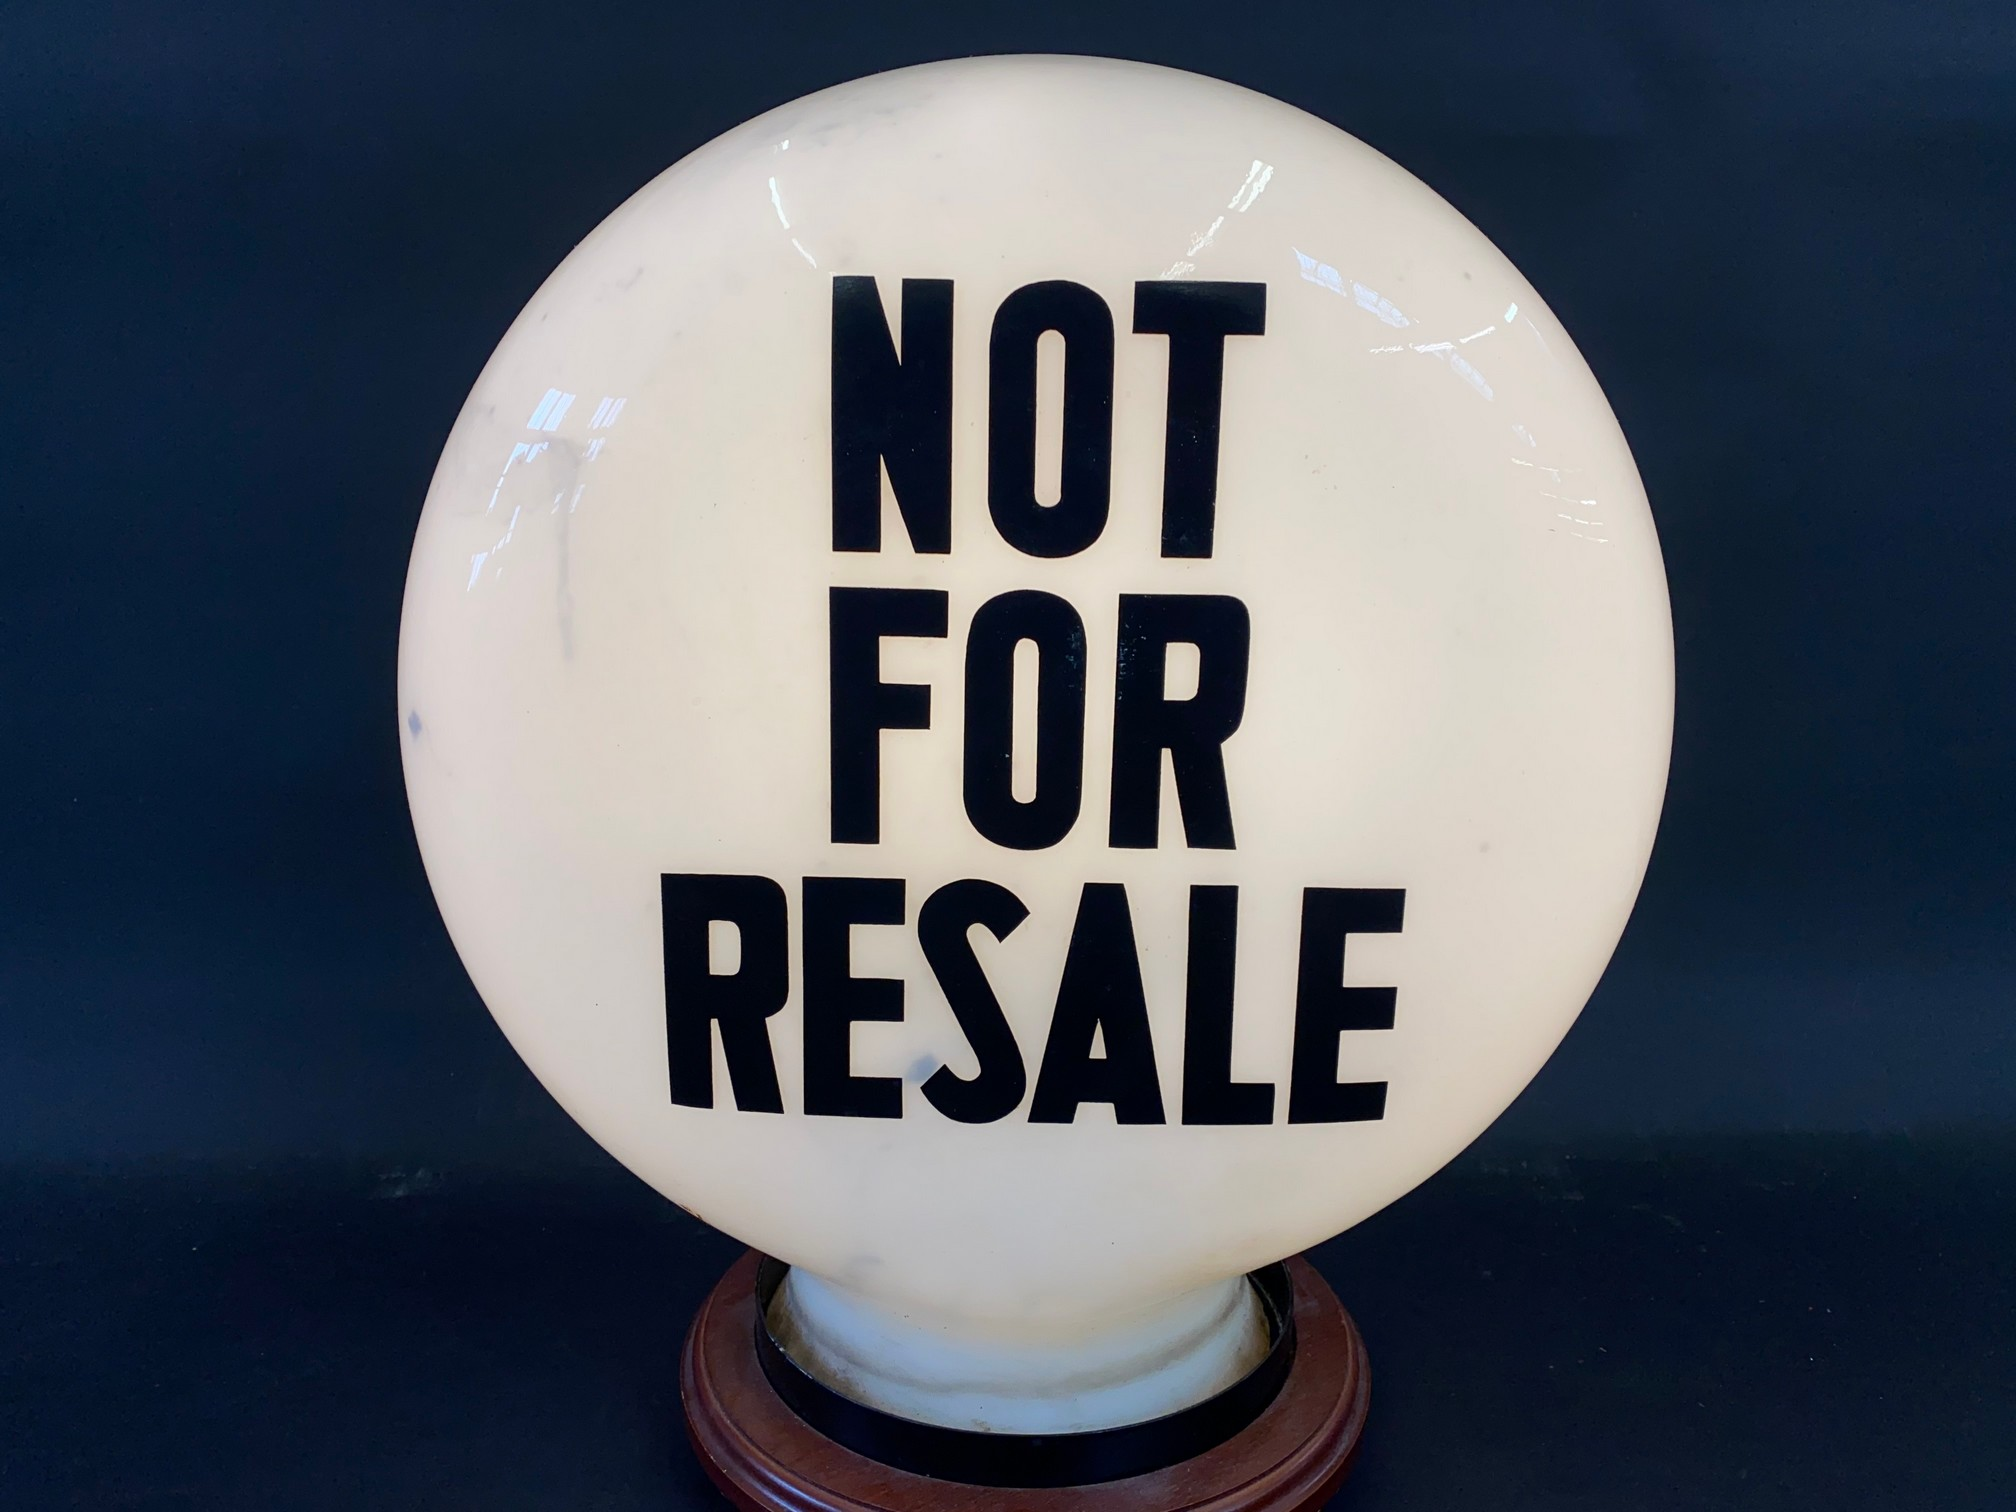 A 'Not For Resale' glass petrol pump globe by Hailware, in good condition, fully stamped 'Property - Image 2 of 3